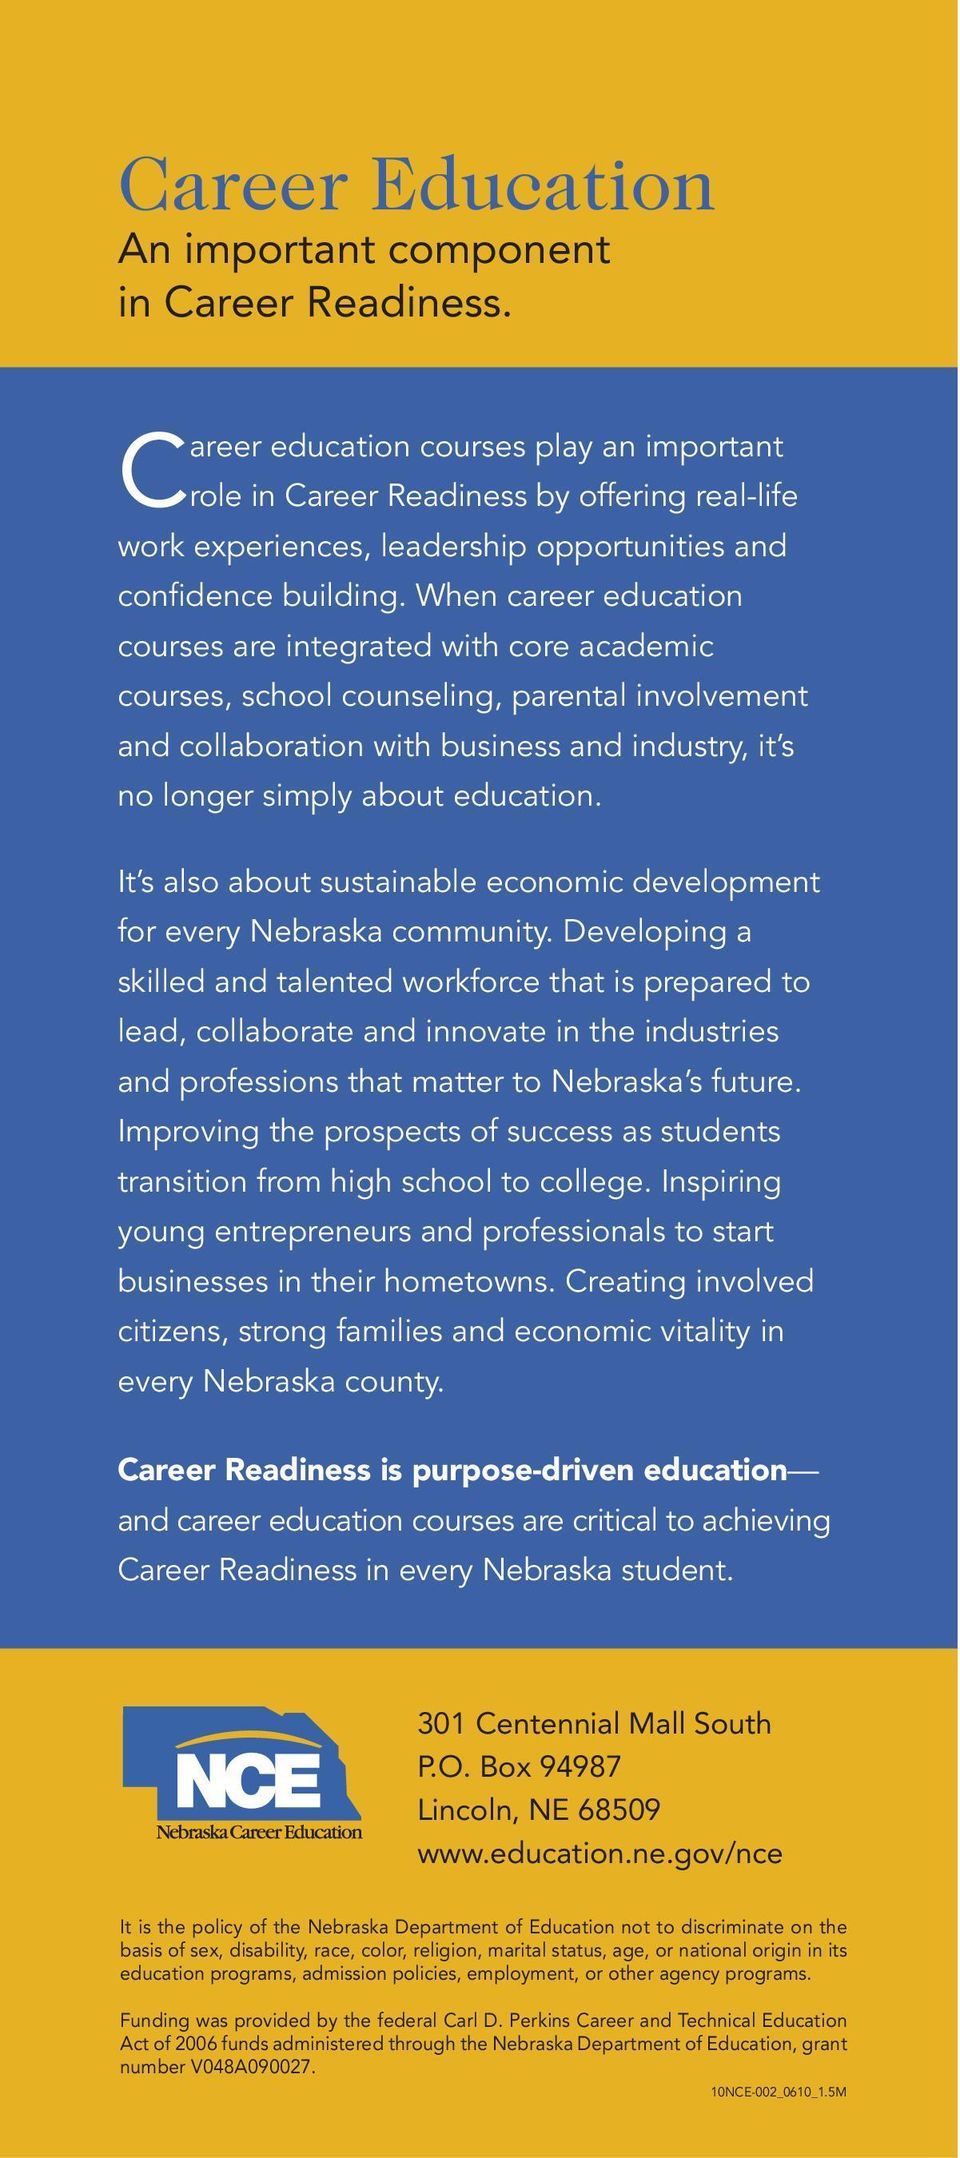 When career education courses are integrated with core academic courses, school counseling, parental involvement and collaboration with business and industry, it s no longer simply about education.